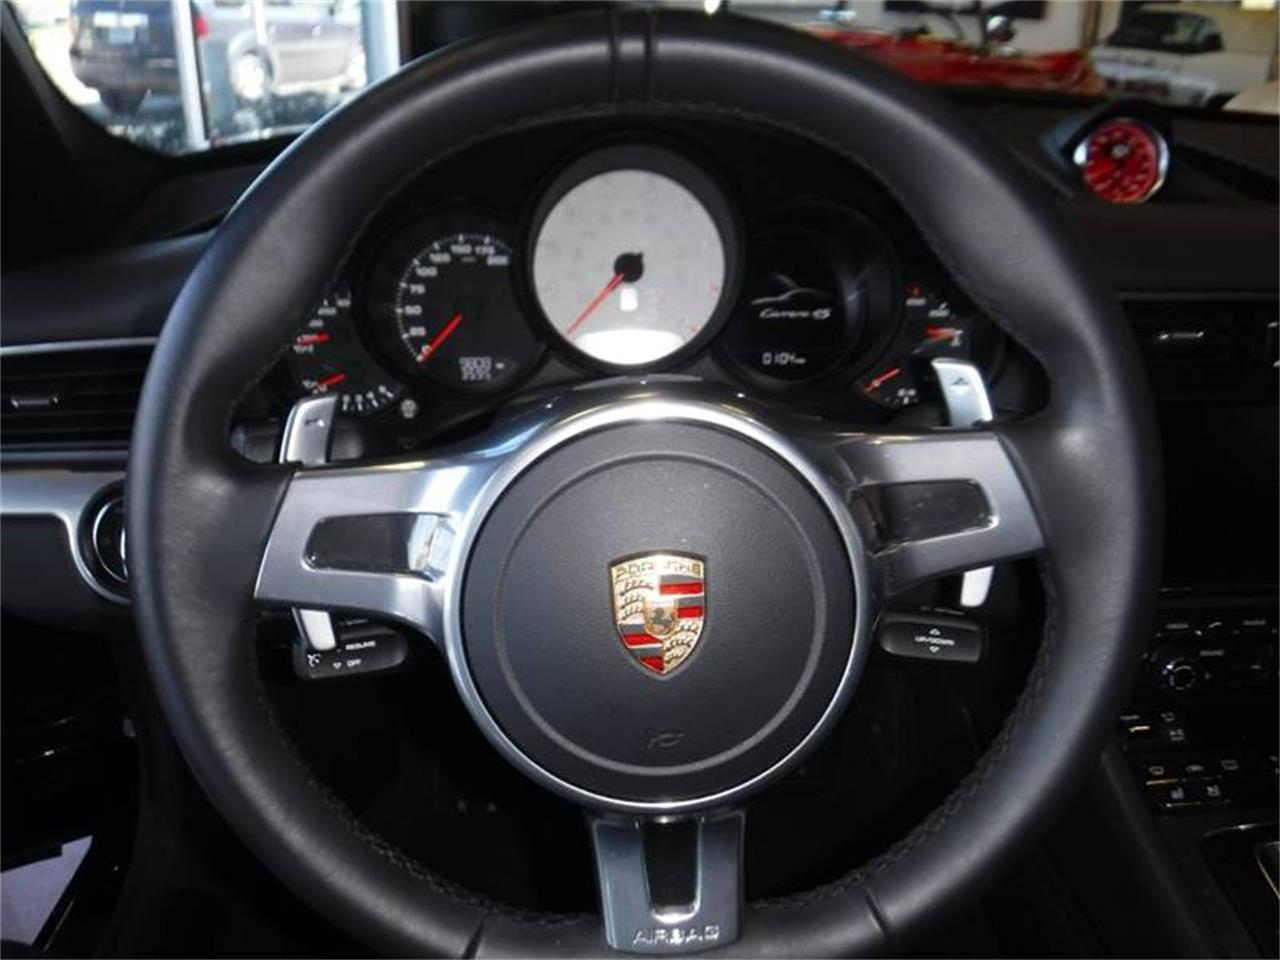 2015 Porsche 911 for sale in Thousand Oaks, CA – photo 13